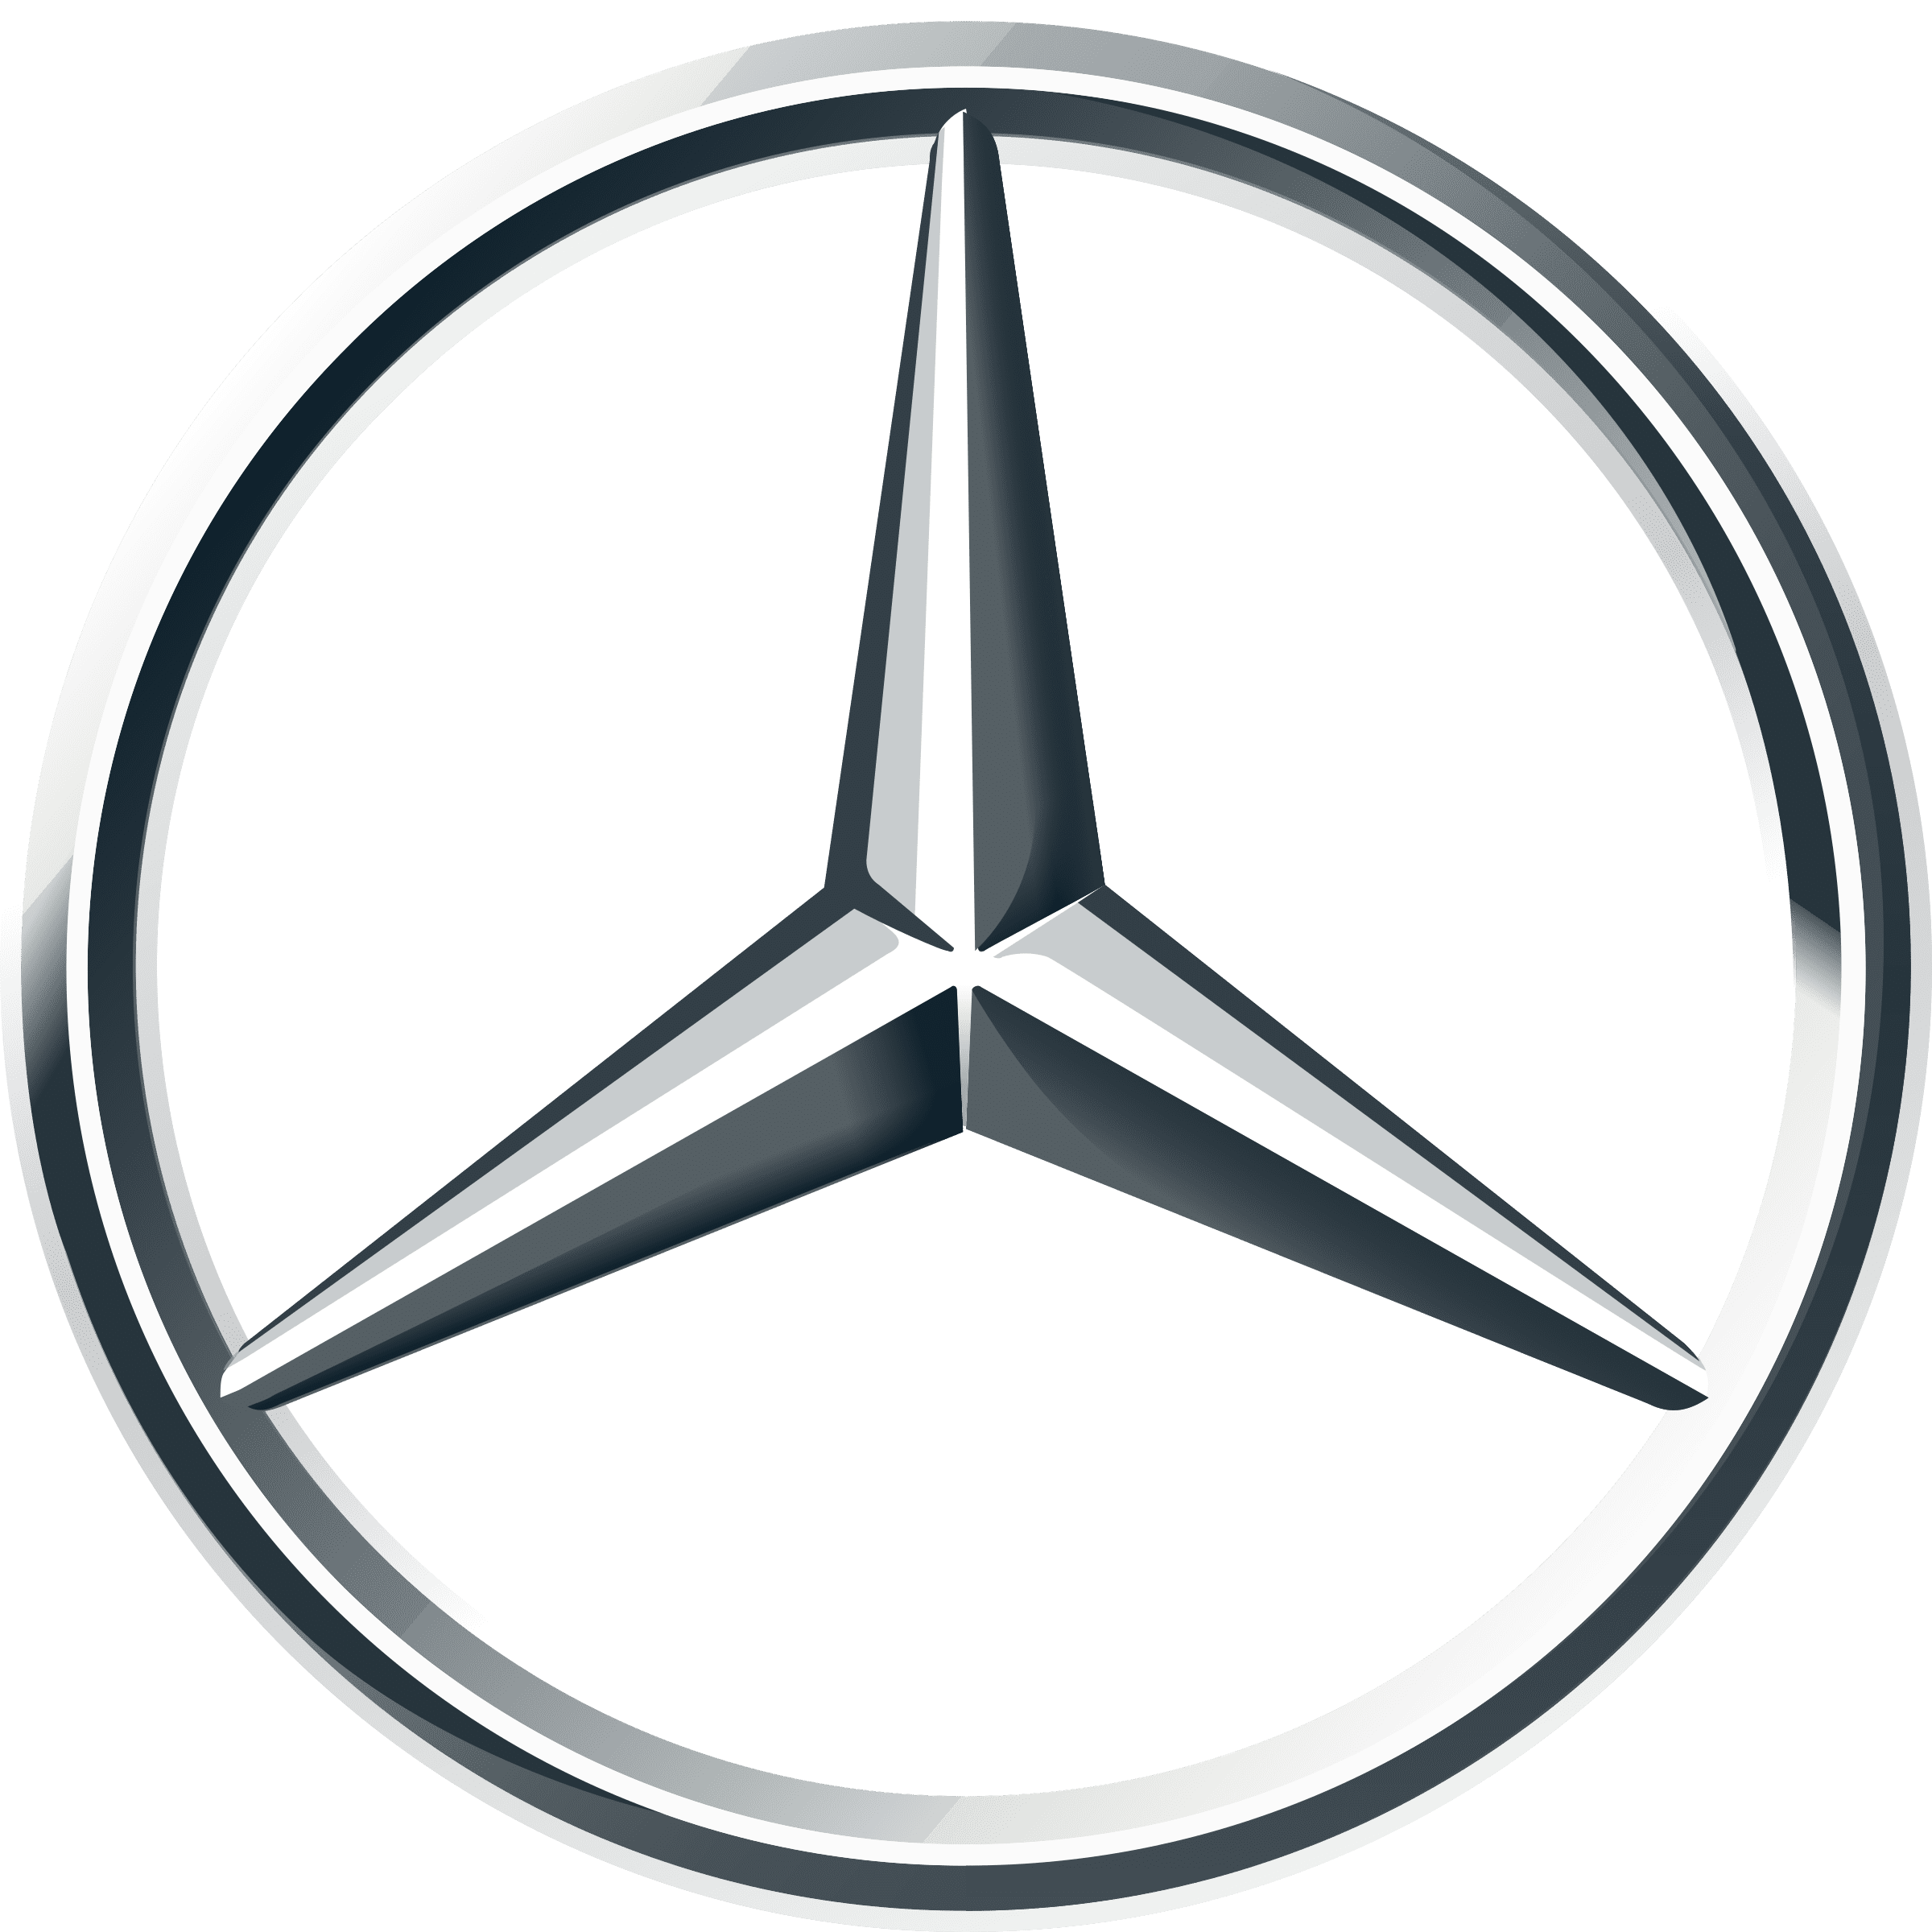 mercedes-benz-9-logo-png-transparent